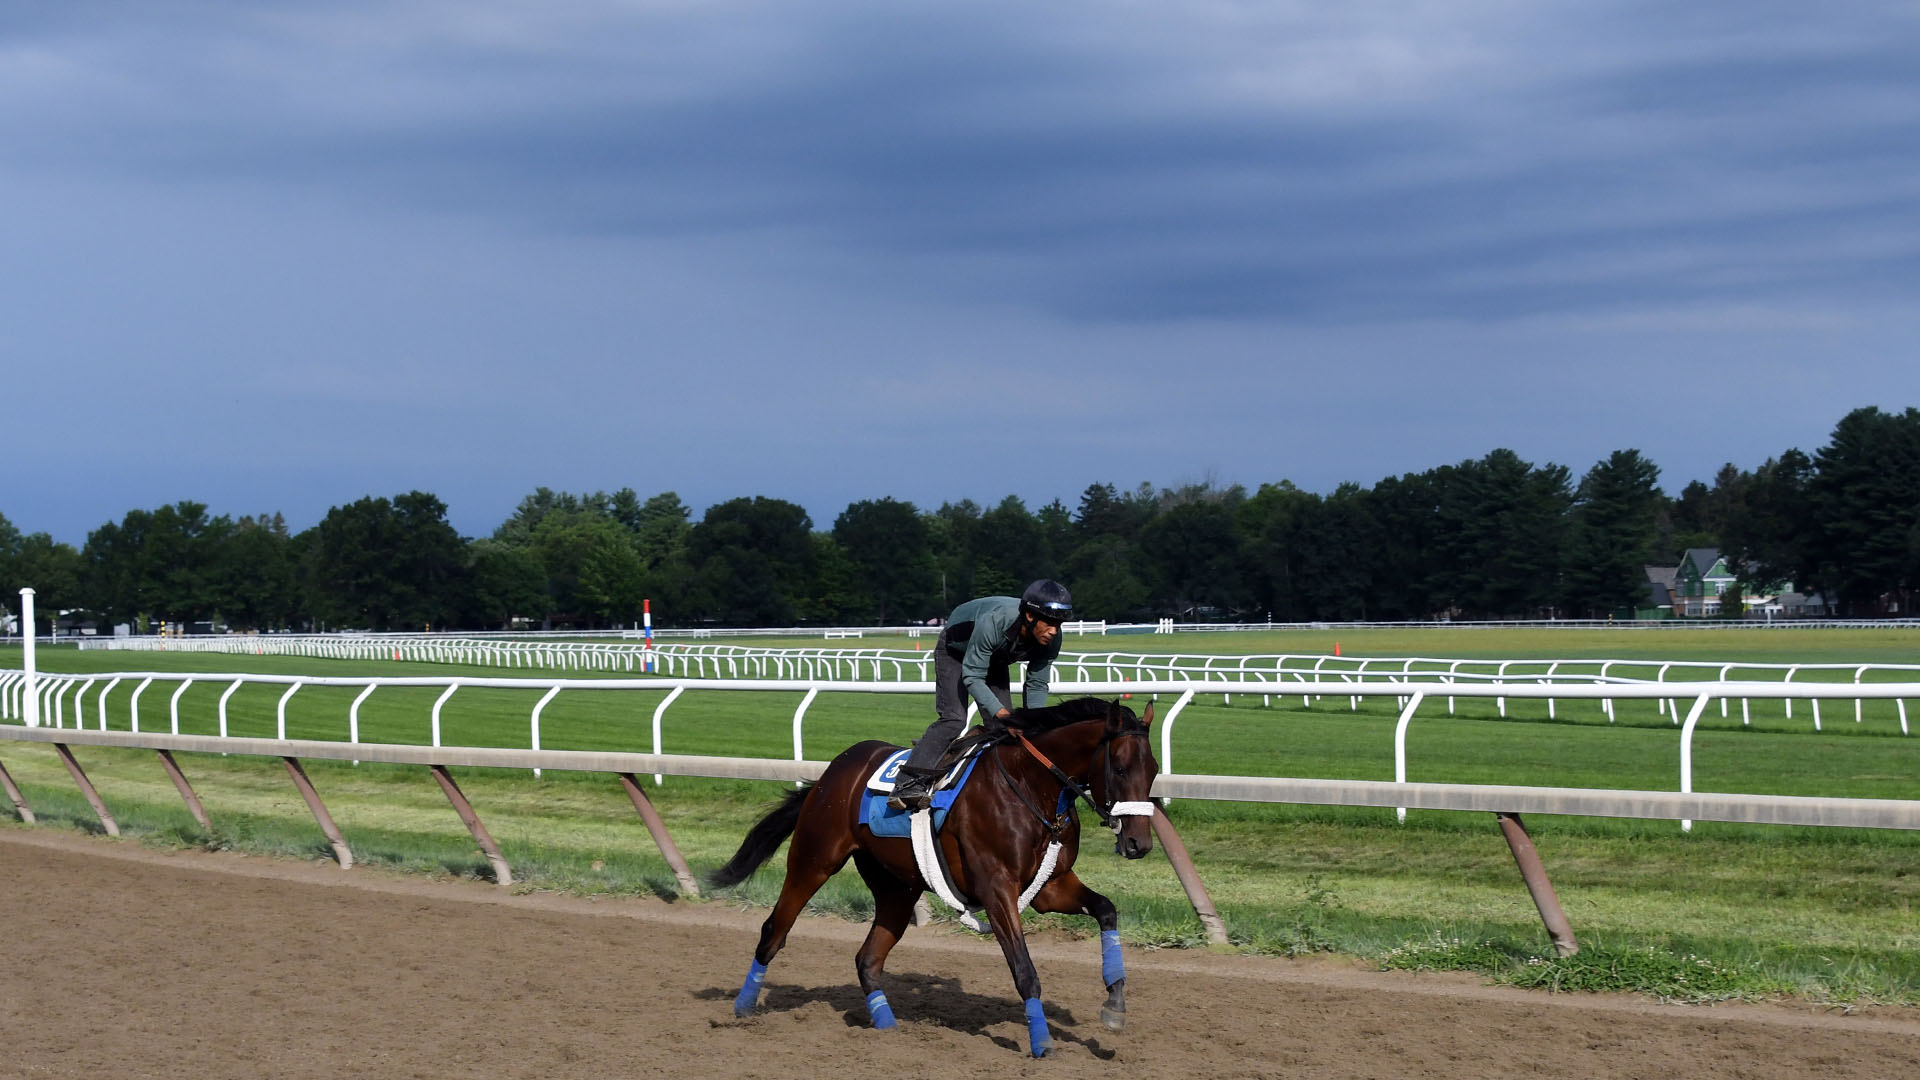 Mihos galloping at Saratoga Race Course.